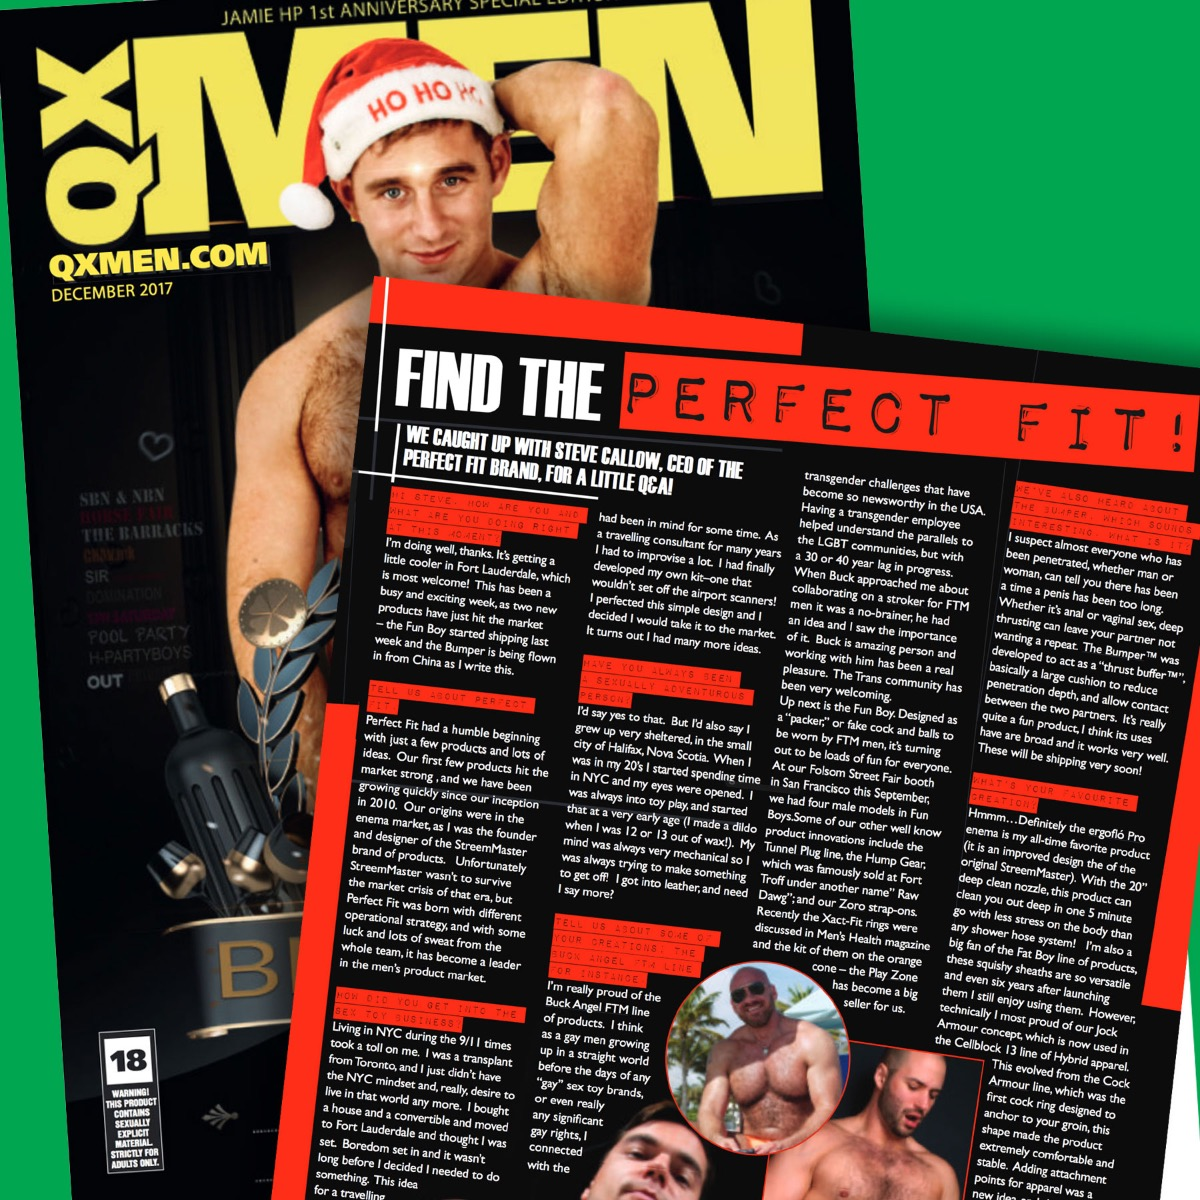 Perfect Fit Brand CEO Steve Callow Interview in QXMEN